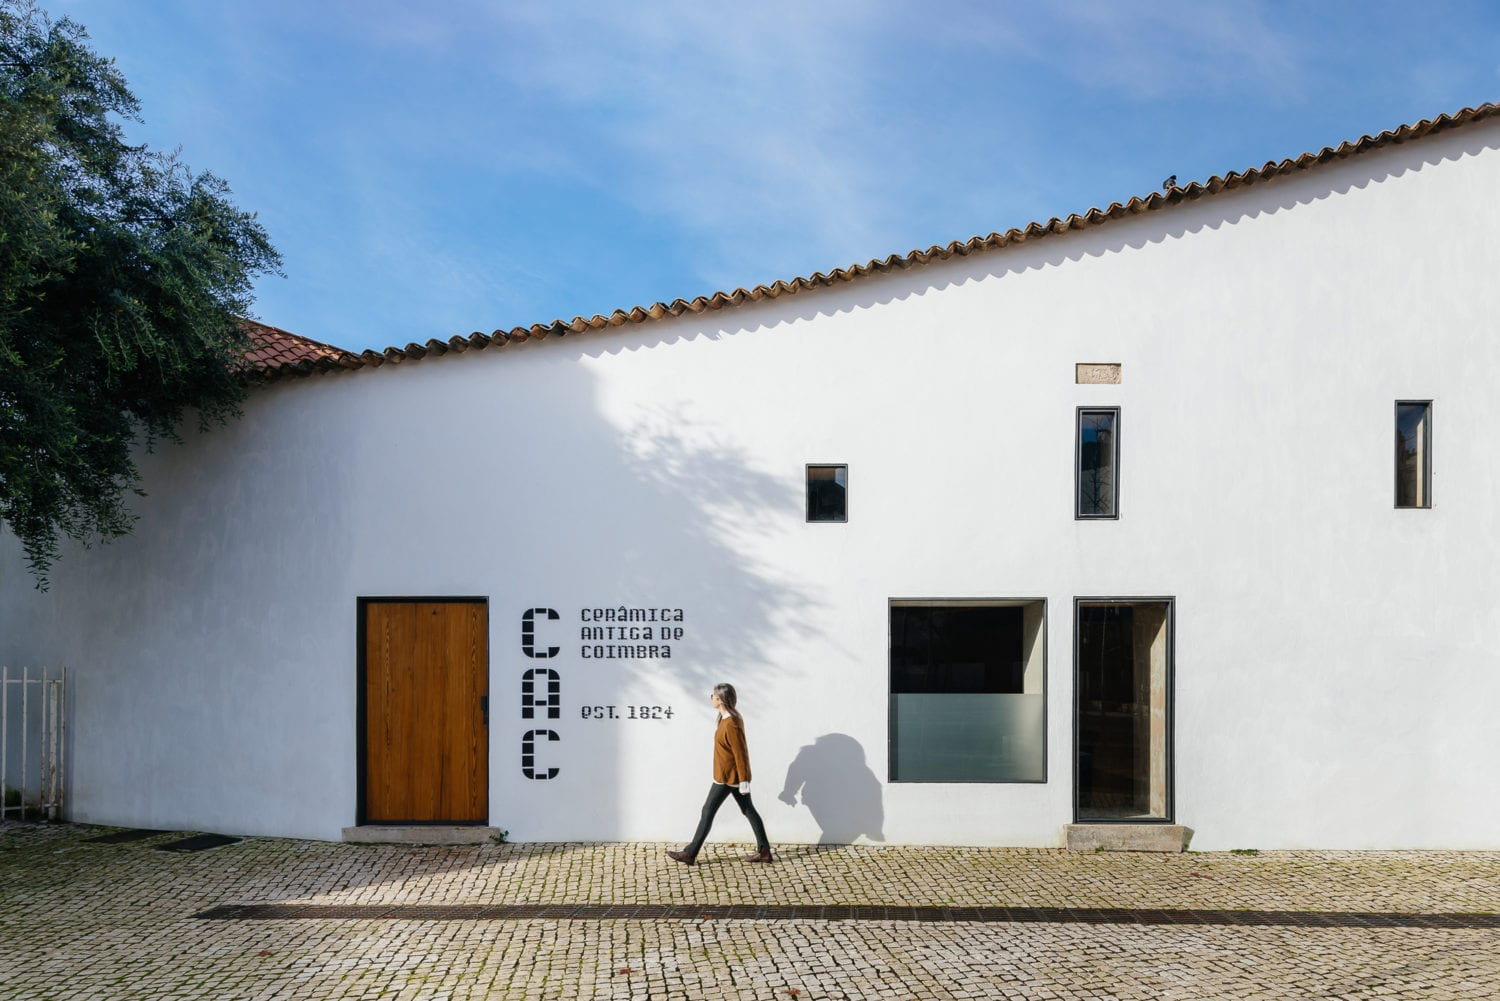 Luisa Bebiano And Atelier Do Corvo Renovation Old Ceramic Society Of Coimbra 18th Century Building Yellowtrace 04